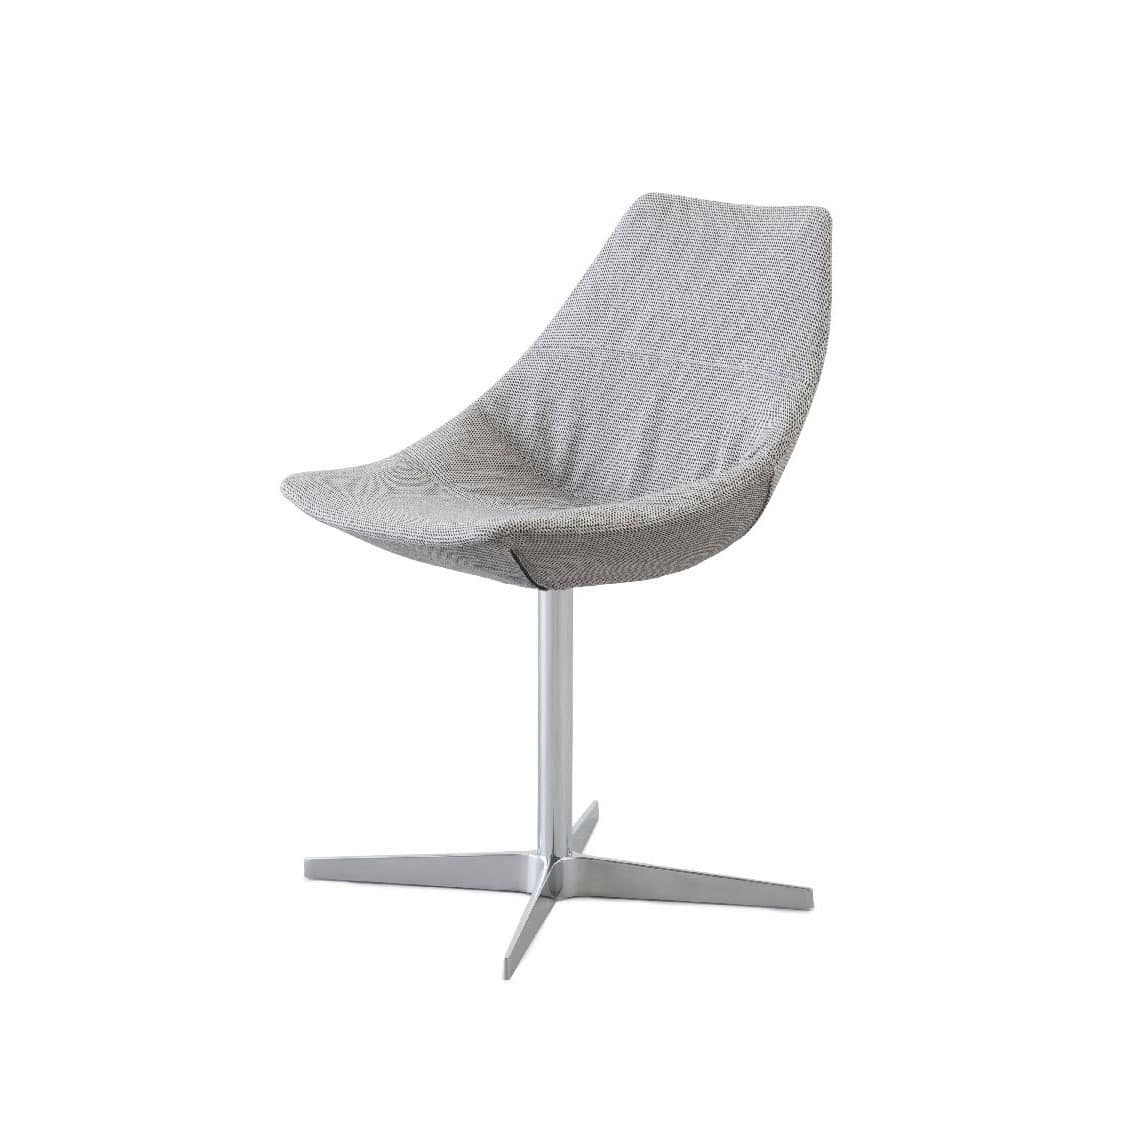 Gamma swivel, Swivel chair with base made of metal